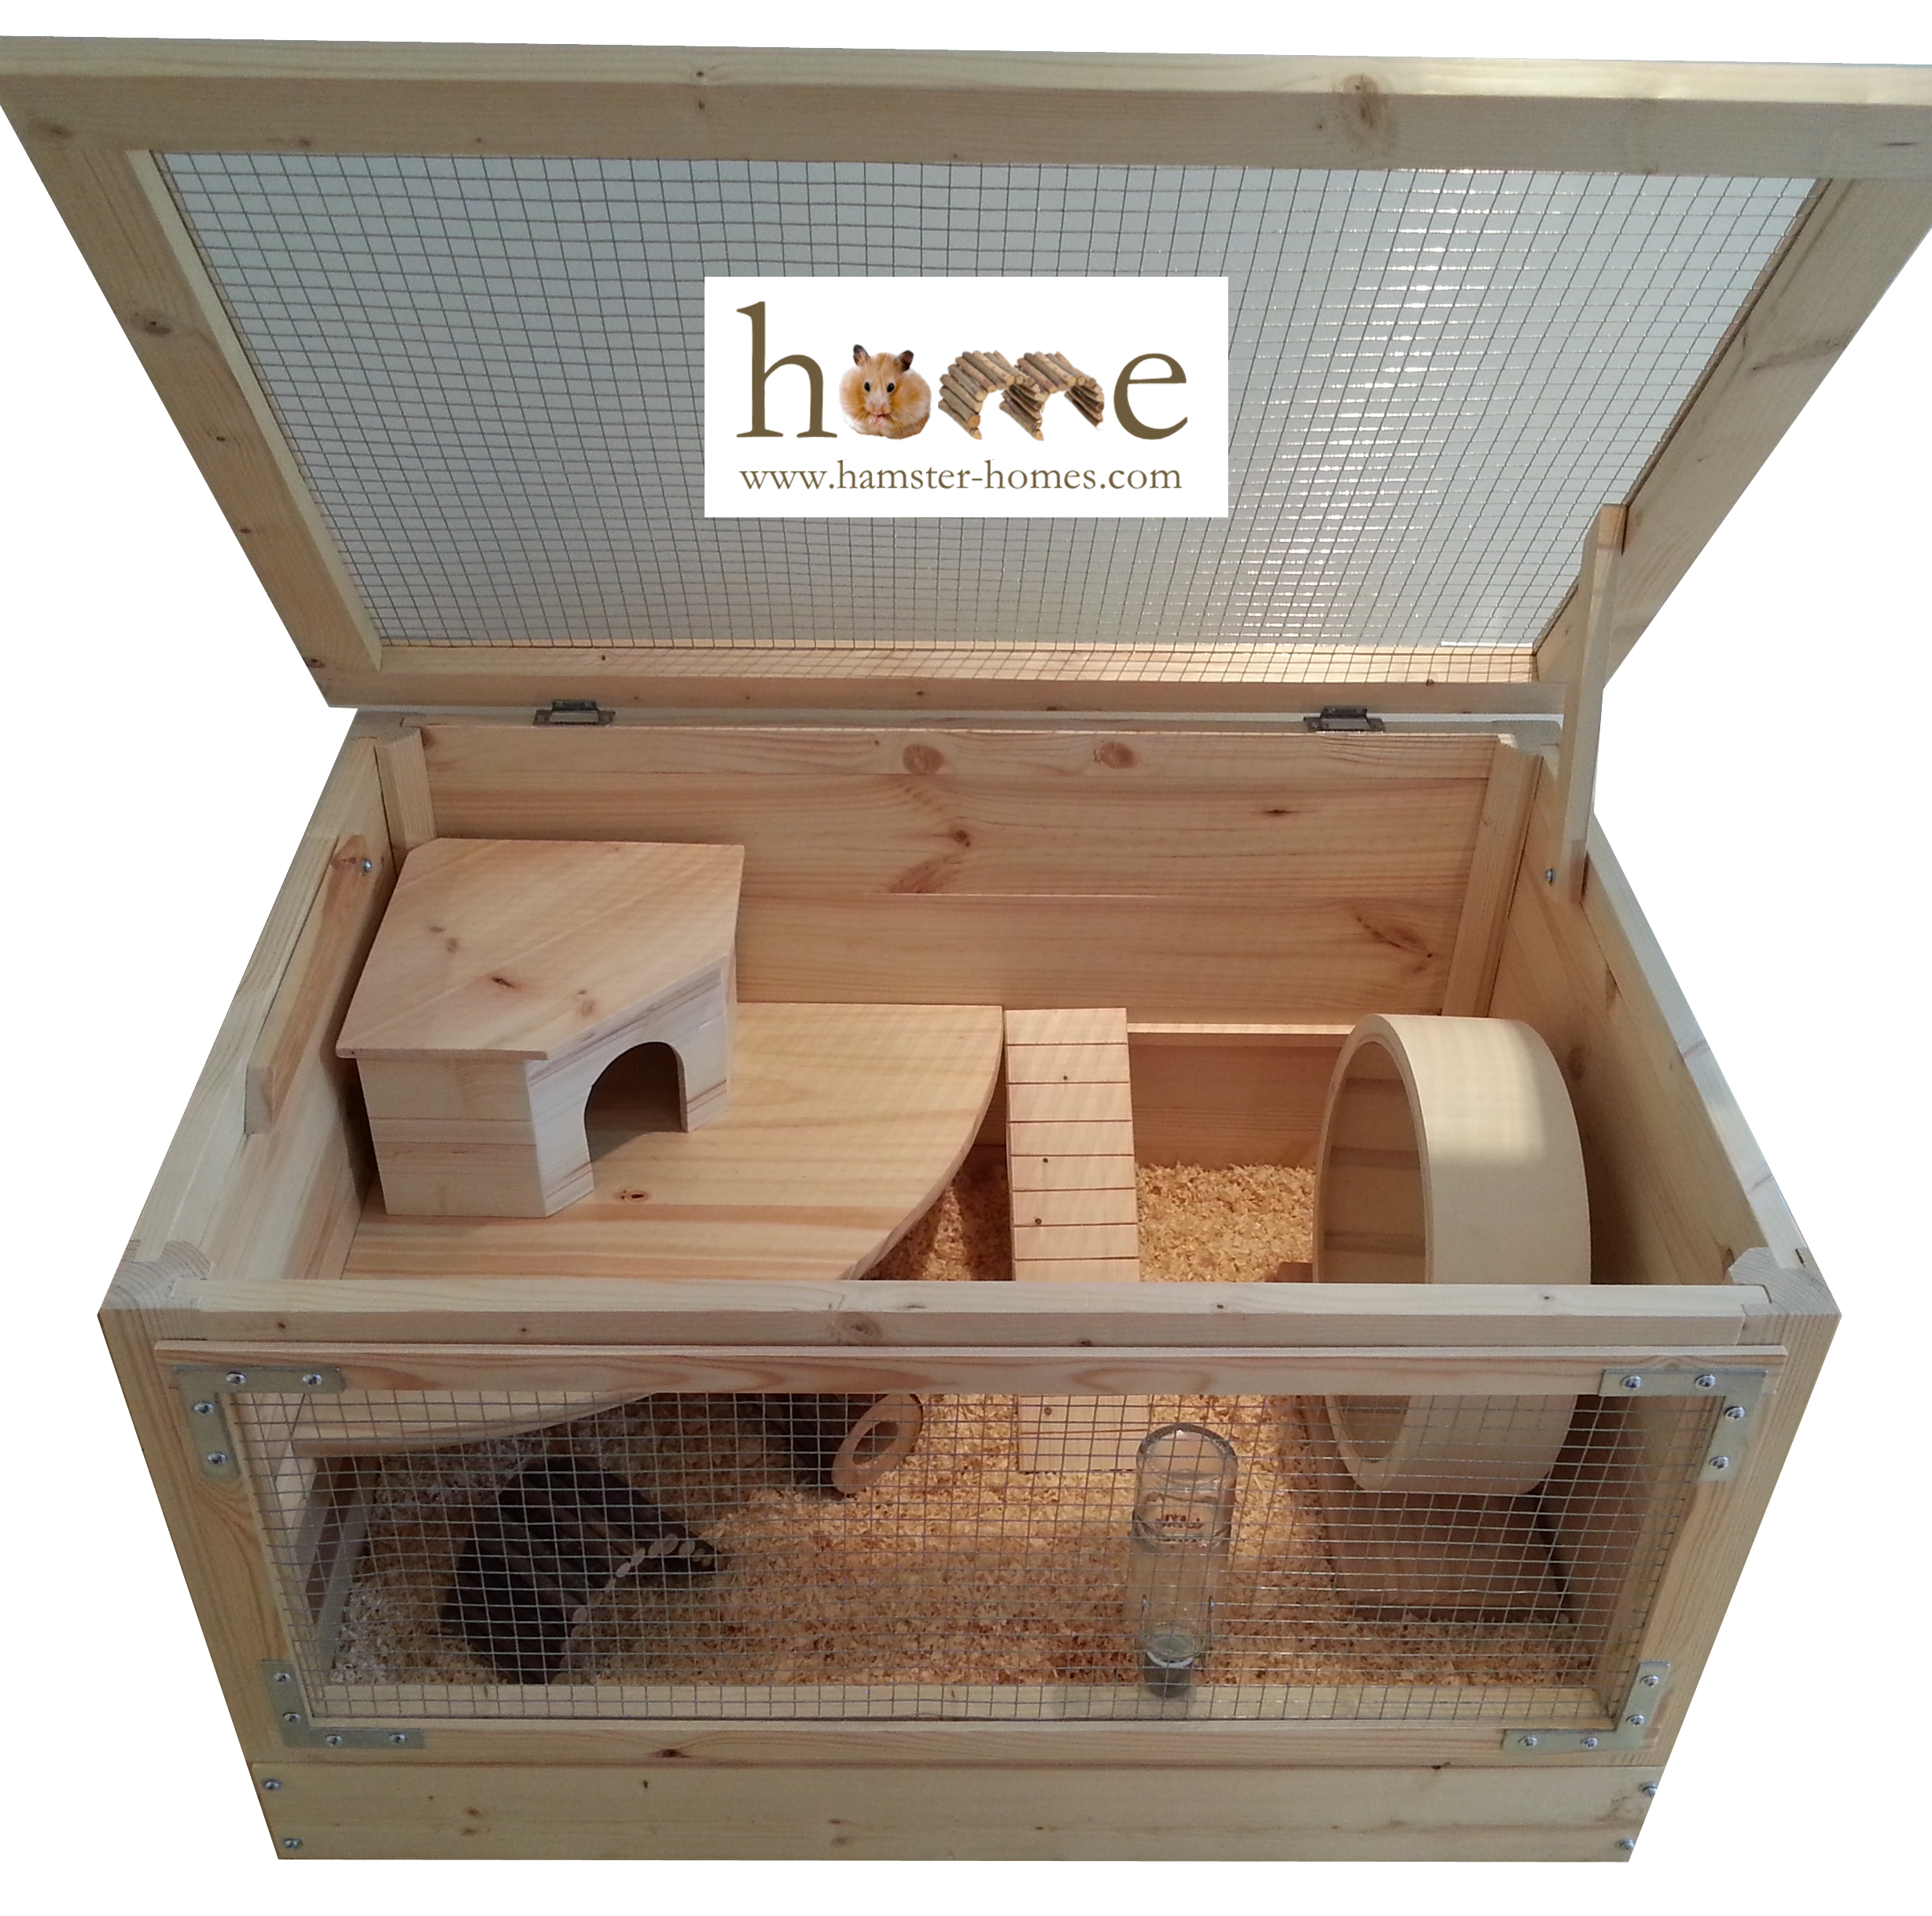 Large wooden hamster cage 80 cm x 50 cm high quality for Small guinea pig cages for sale